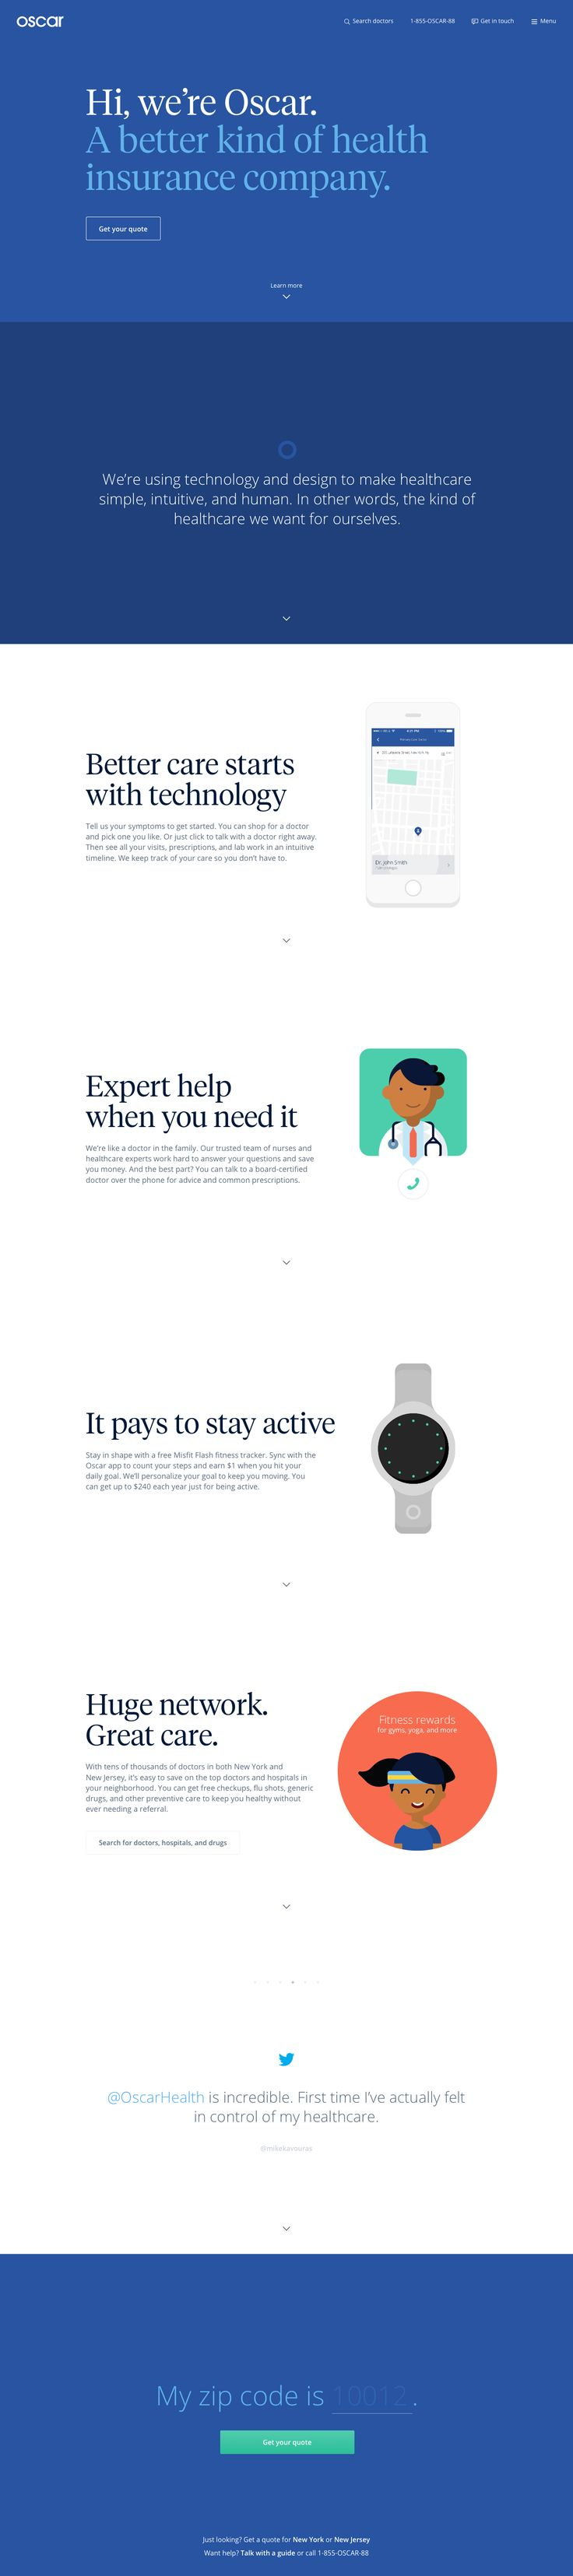 Health Insurance Quotes Mesmerizing 58 Best Oscar Health Insurance Images On Pinterest  Health